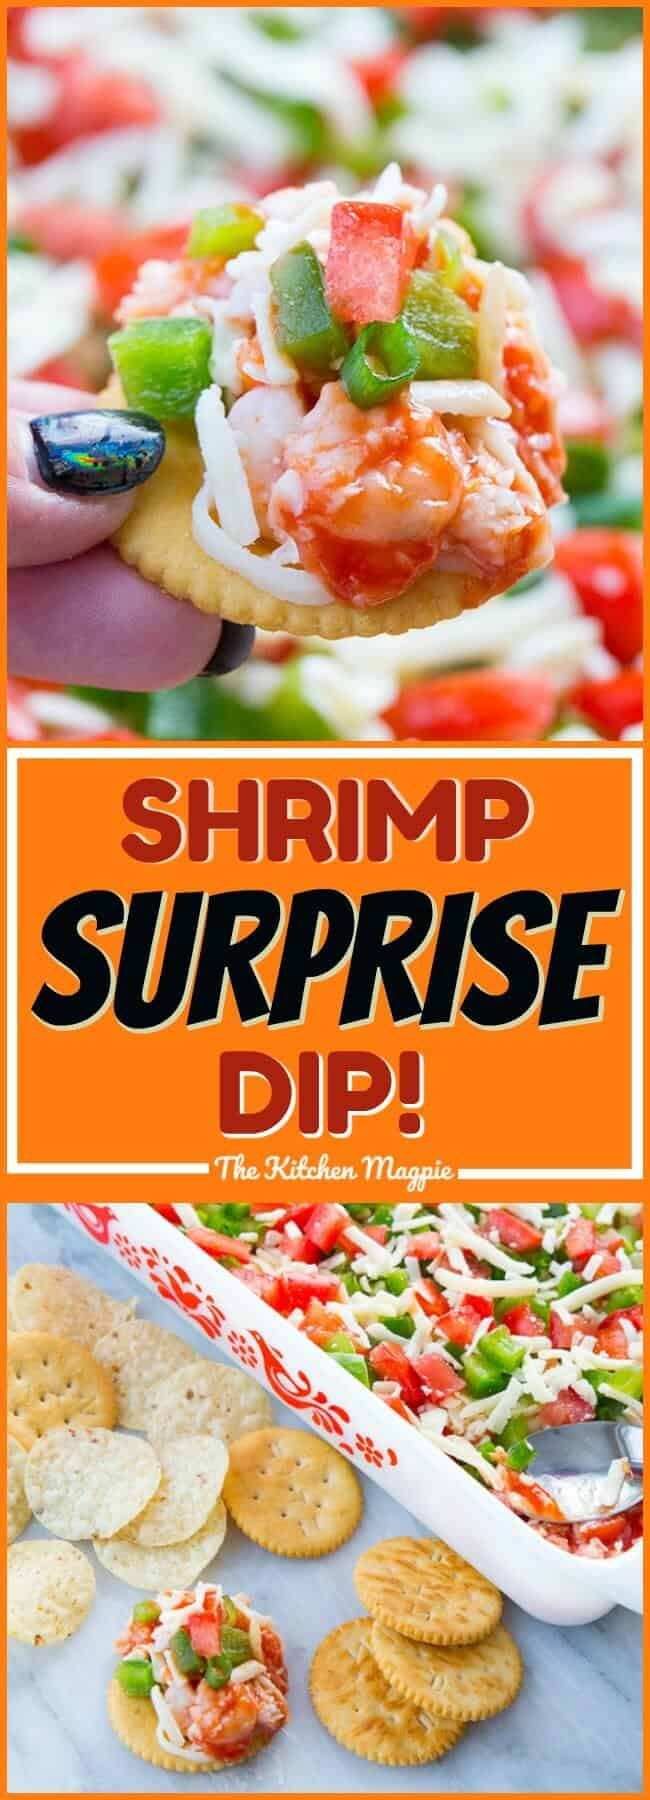 Shrimp Surprise Spread - The Best Shrimp Dip Ever! This dip or spread is perfect for entertaining - especially on Game Day! #dip #recipe #shrimp